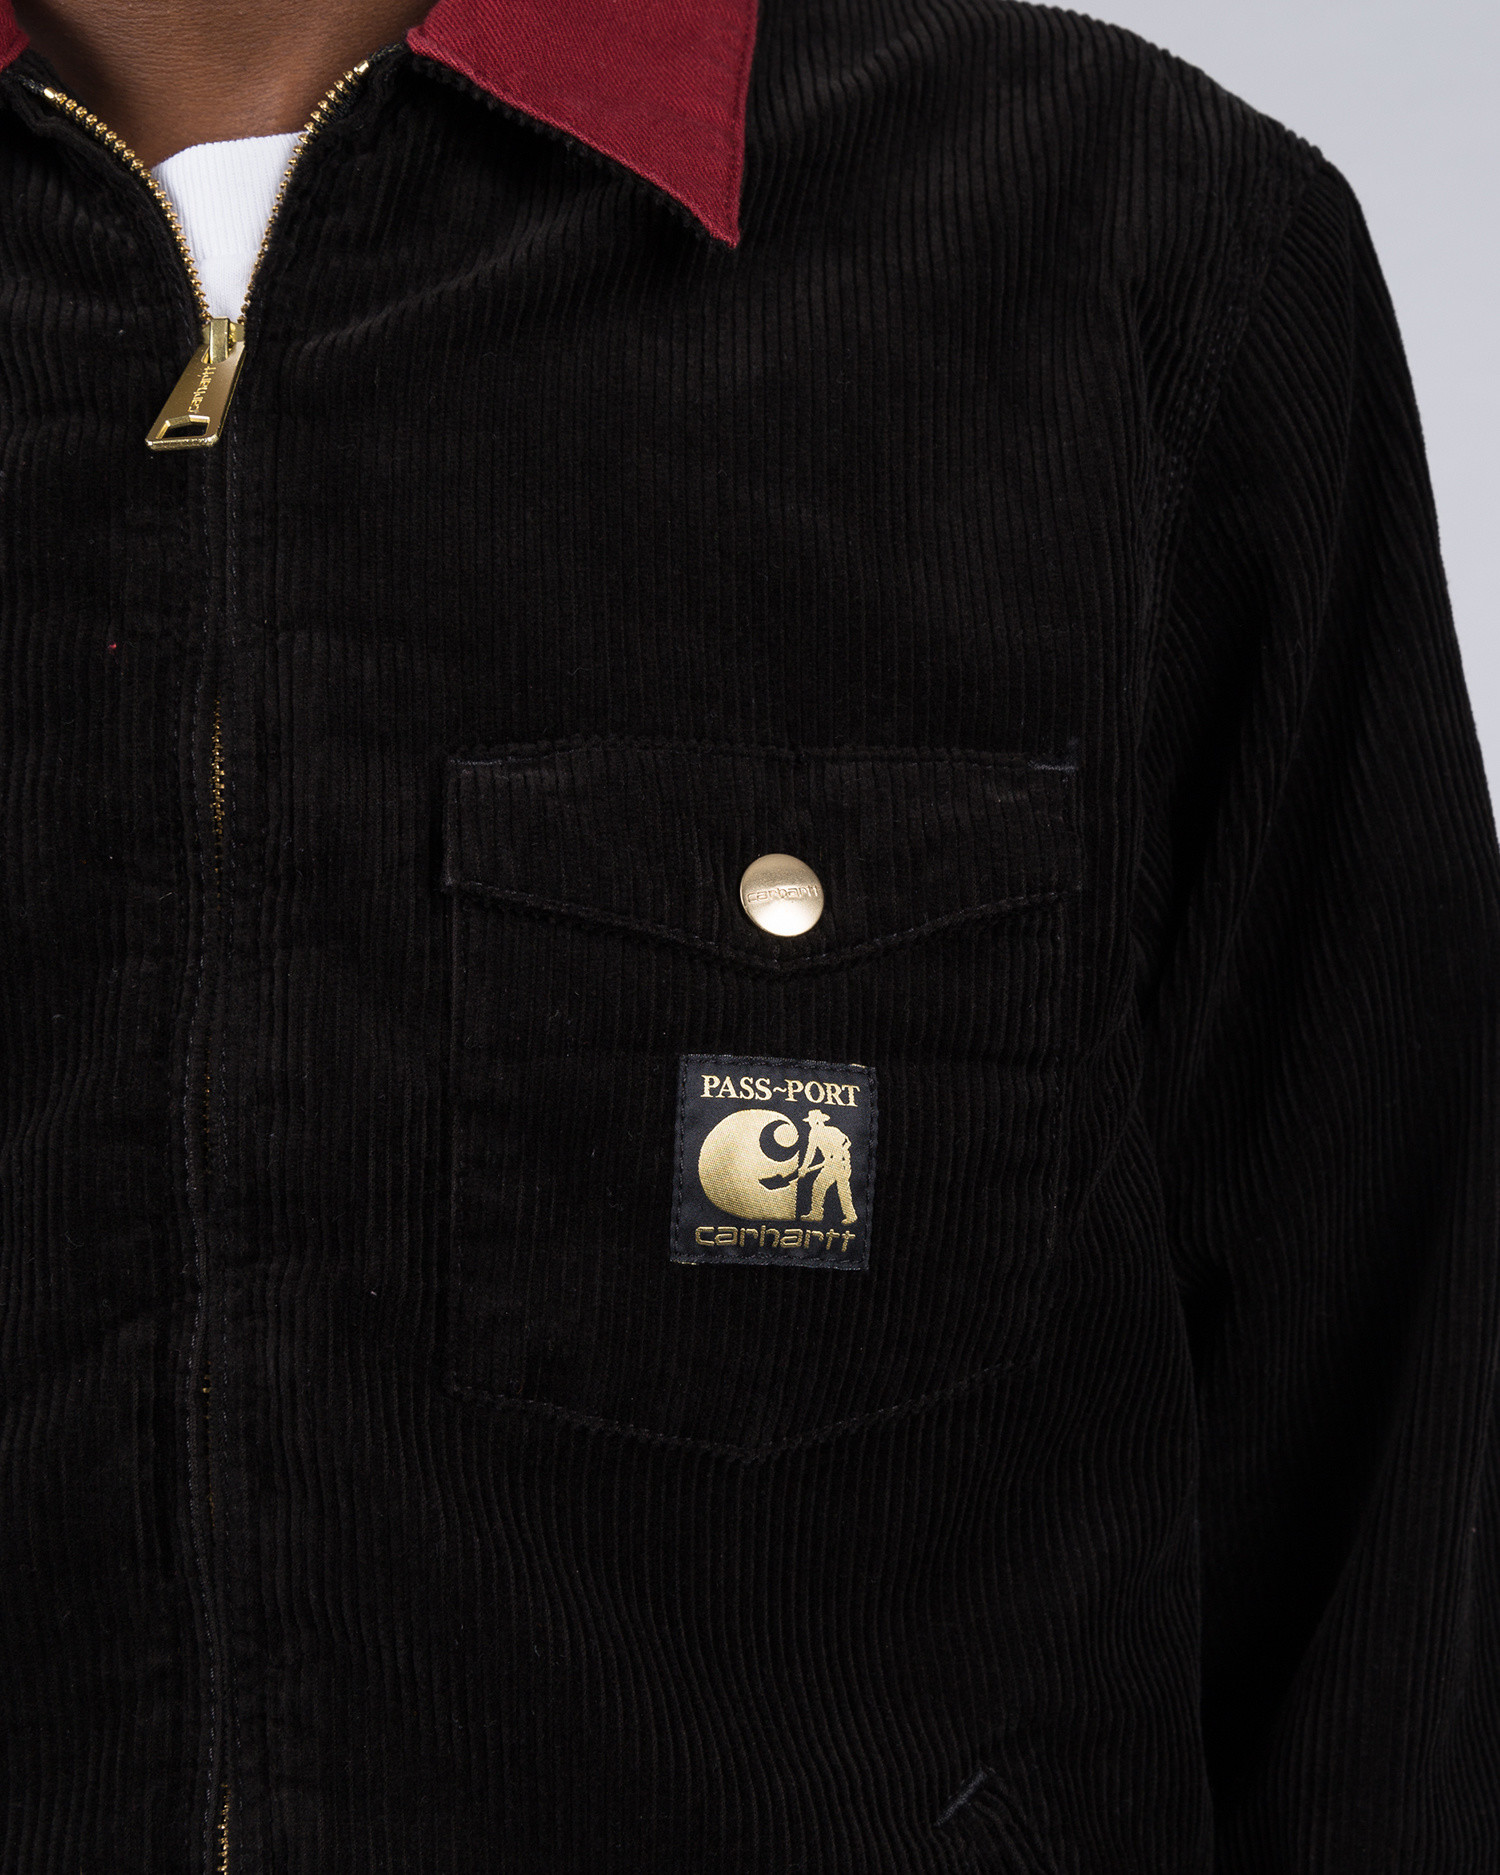 Carhartt X Passport Jacket Passport Black